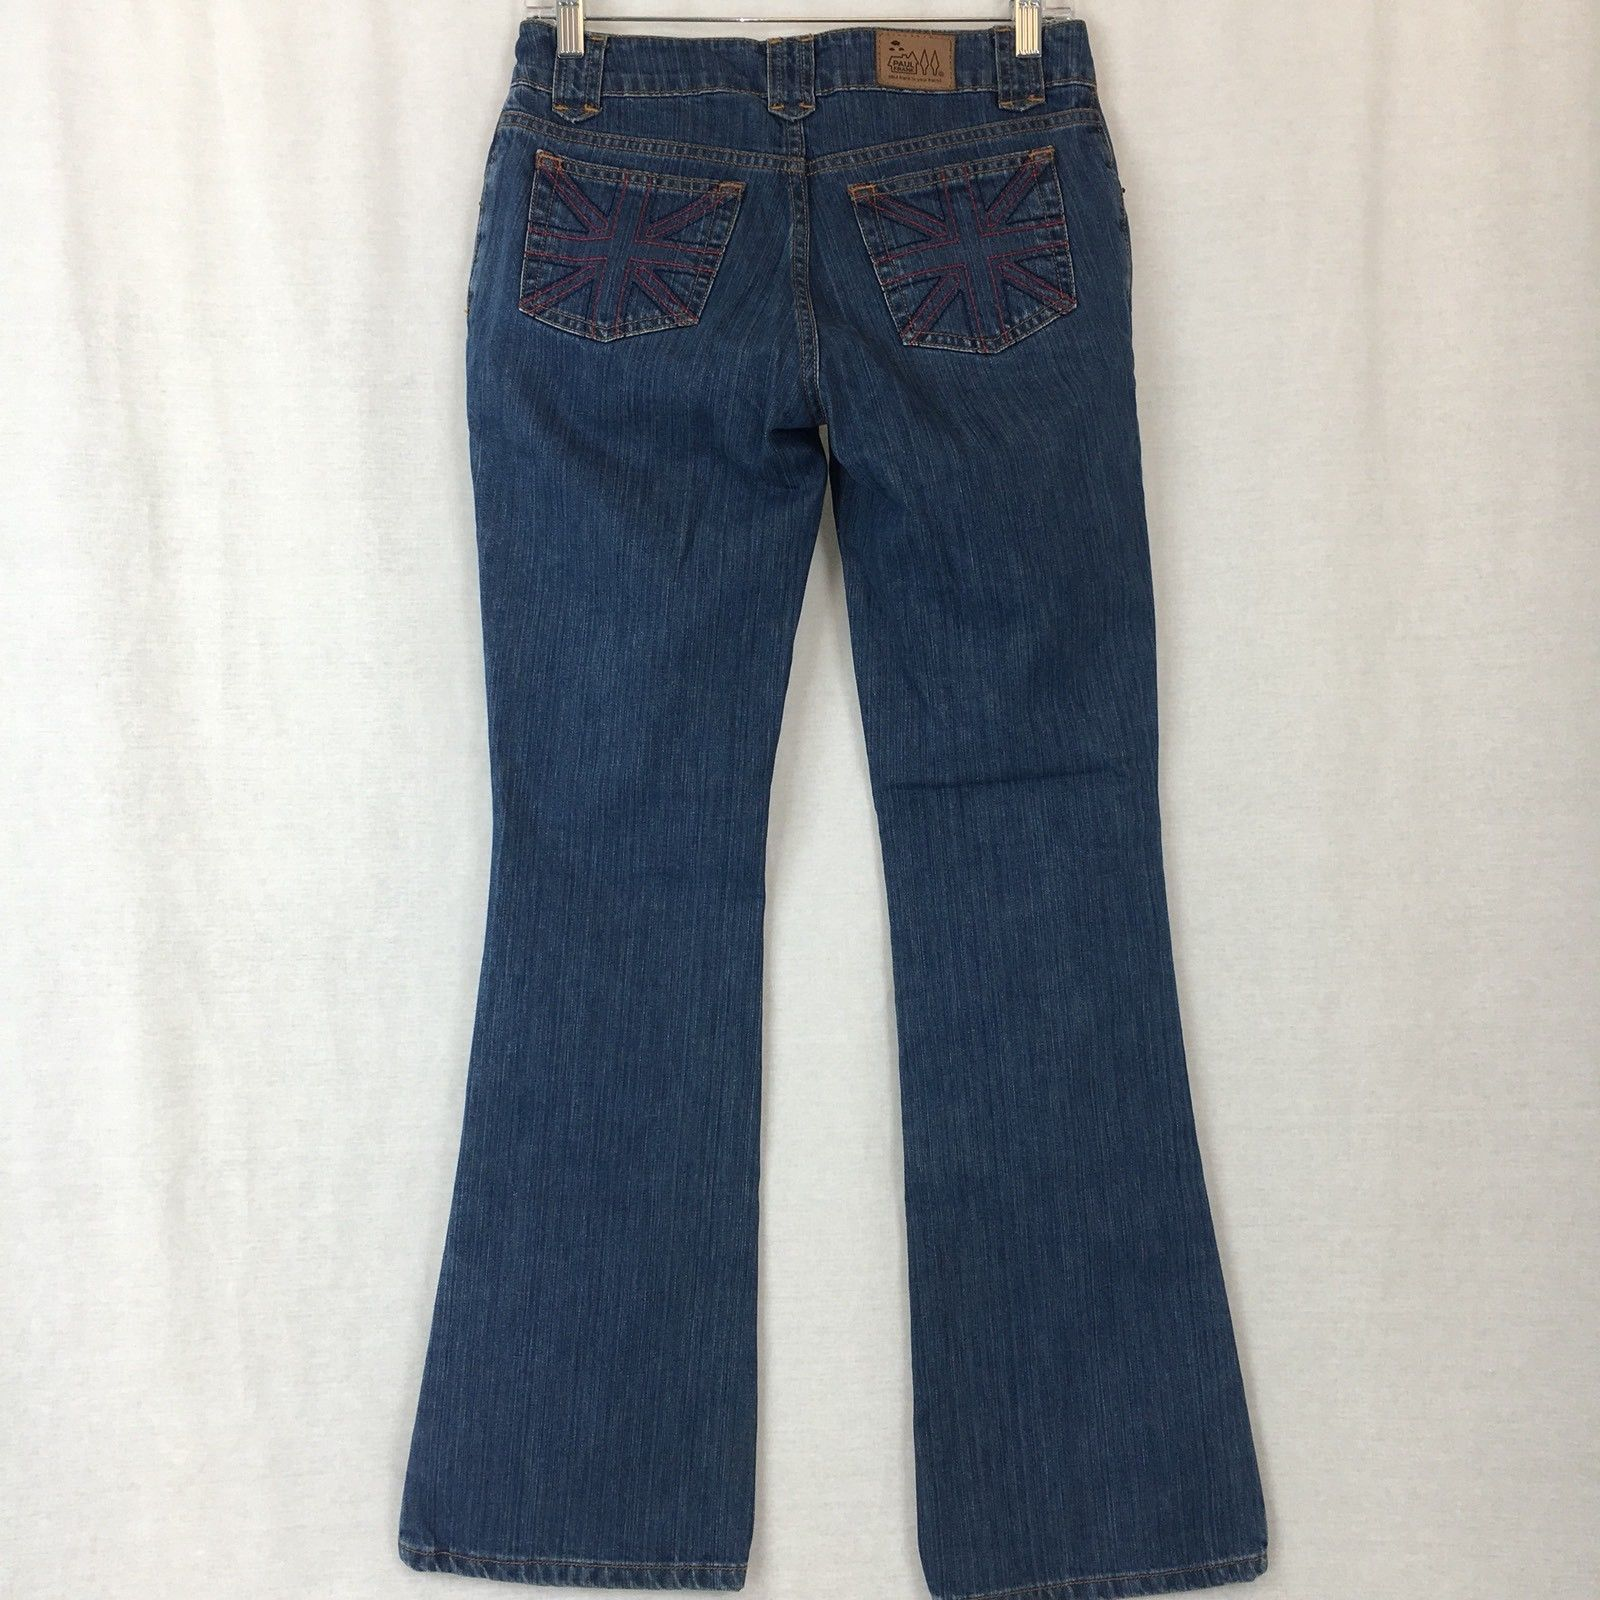 Paul Frank Womens Jeans Flare Medium Wash Low Rise Cotton Juniors Size 3x32